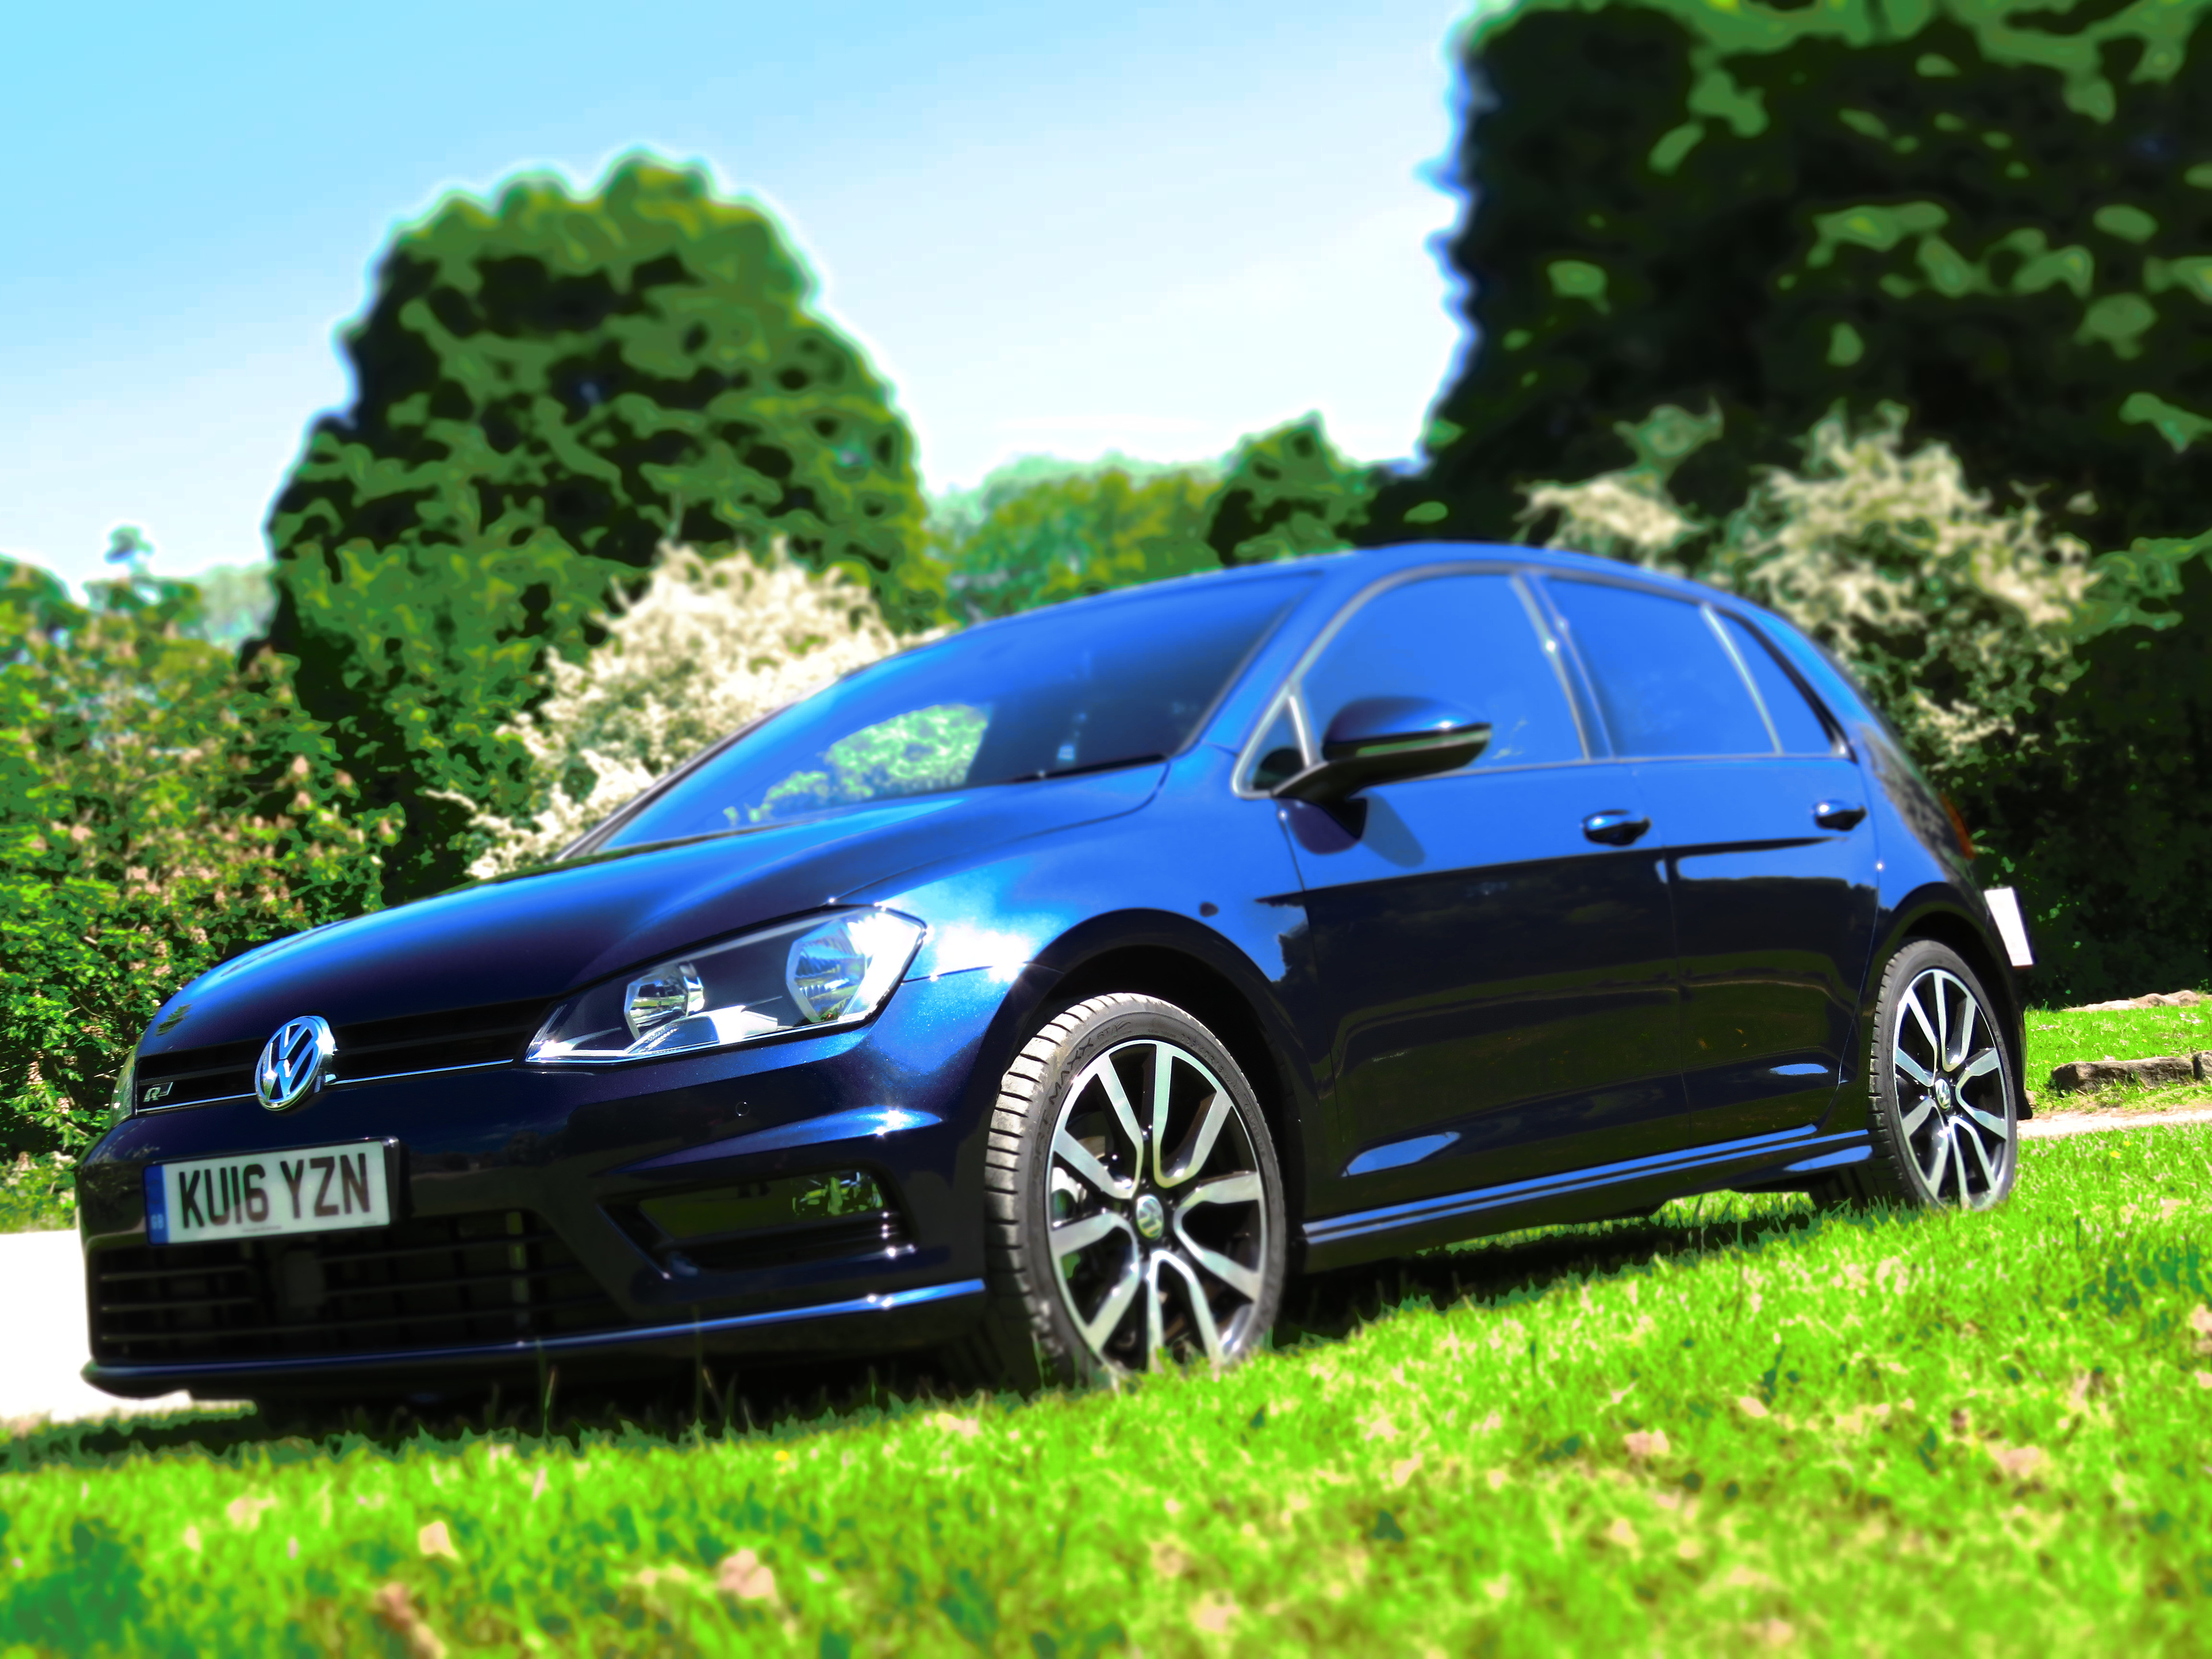 volkswagen golf r line edition 2 0 litre tdi 150 ps 6spd. Black Bedroom Furniture Sets. Home Design Ideas